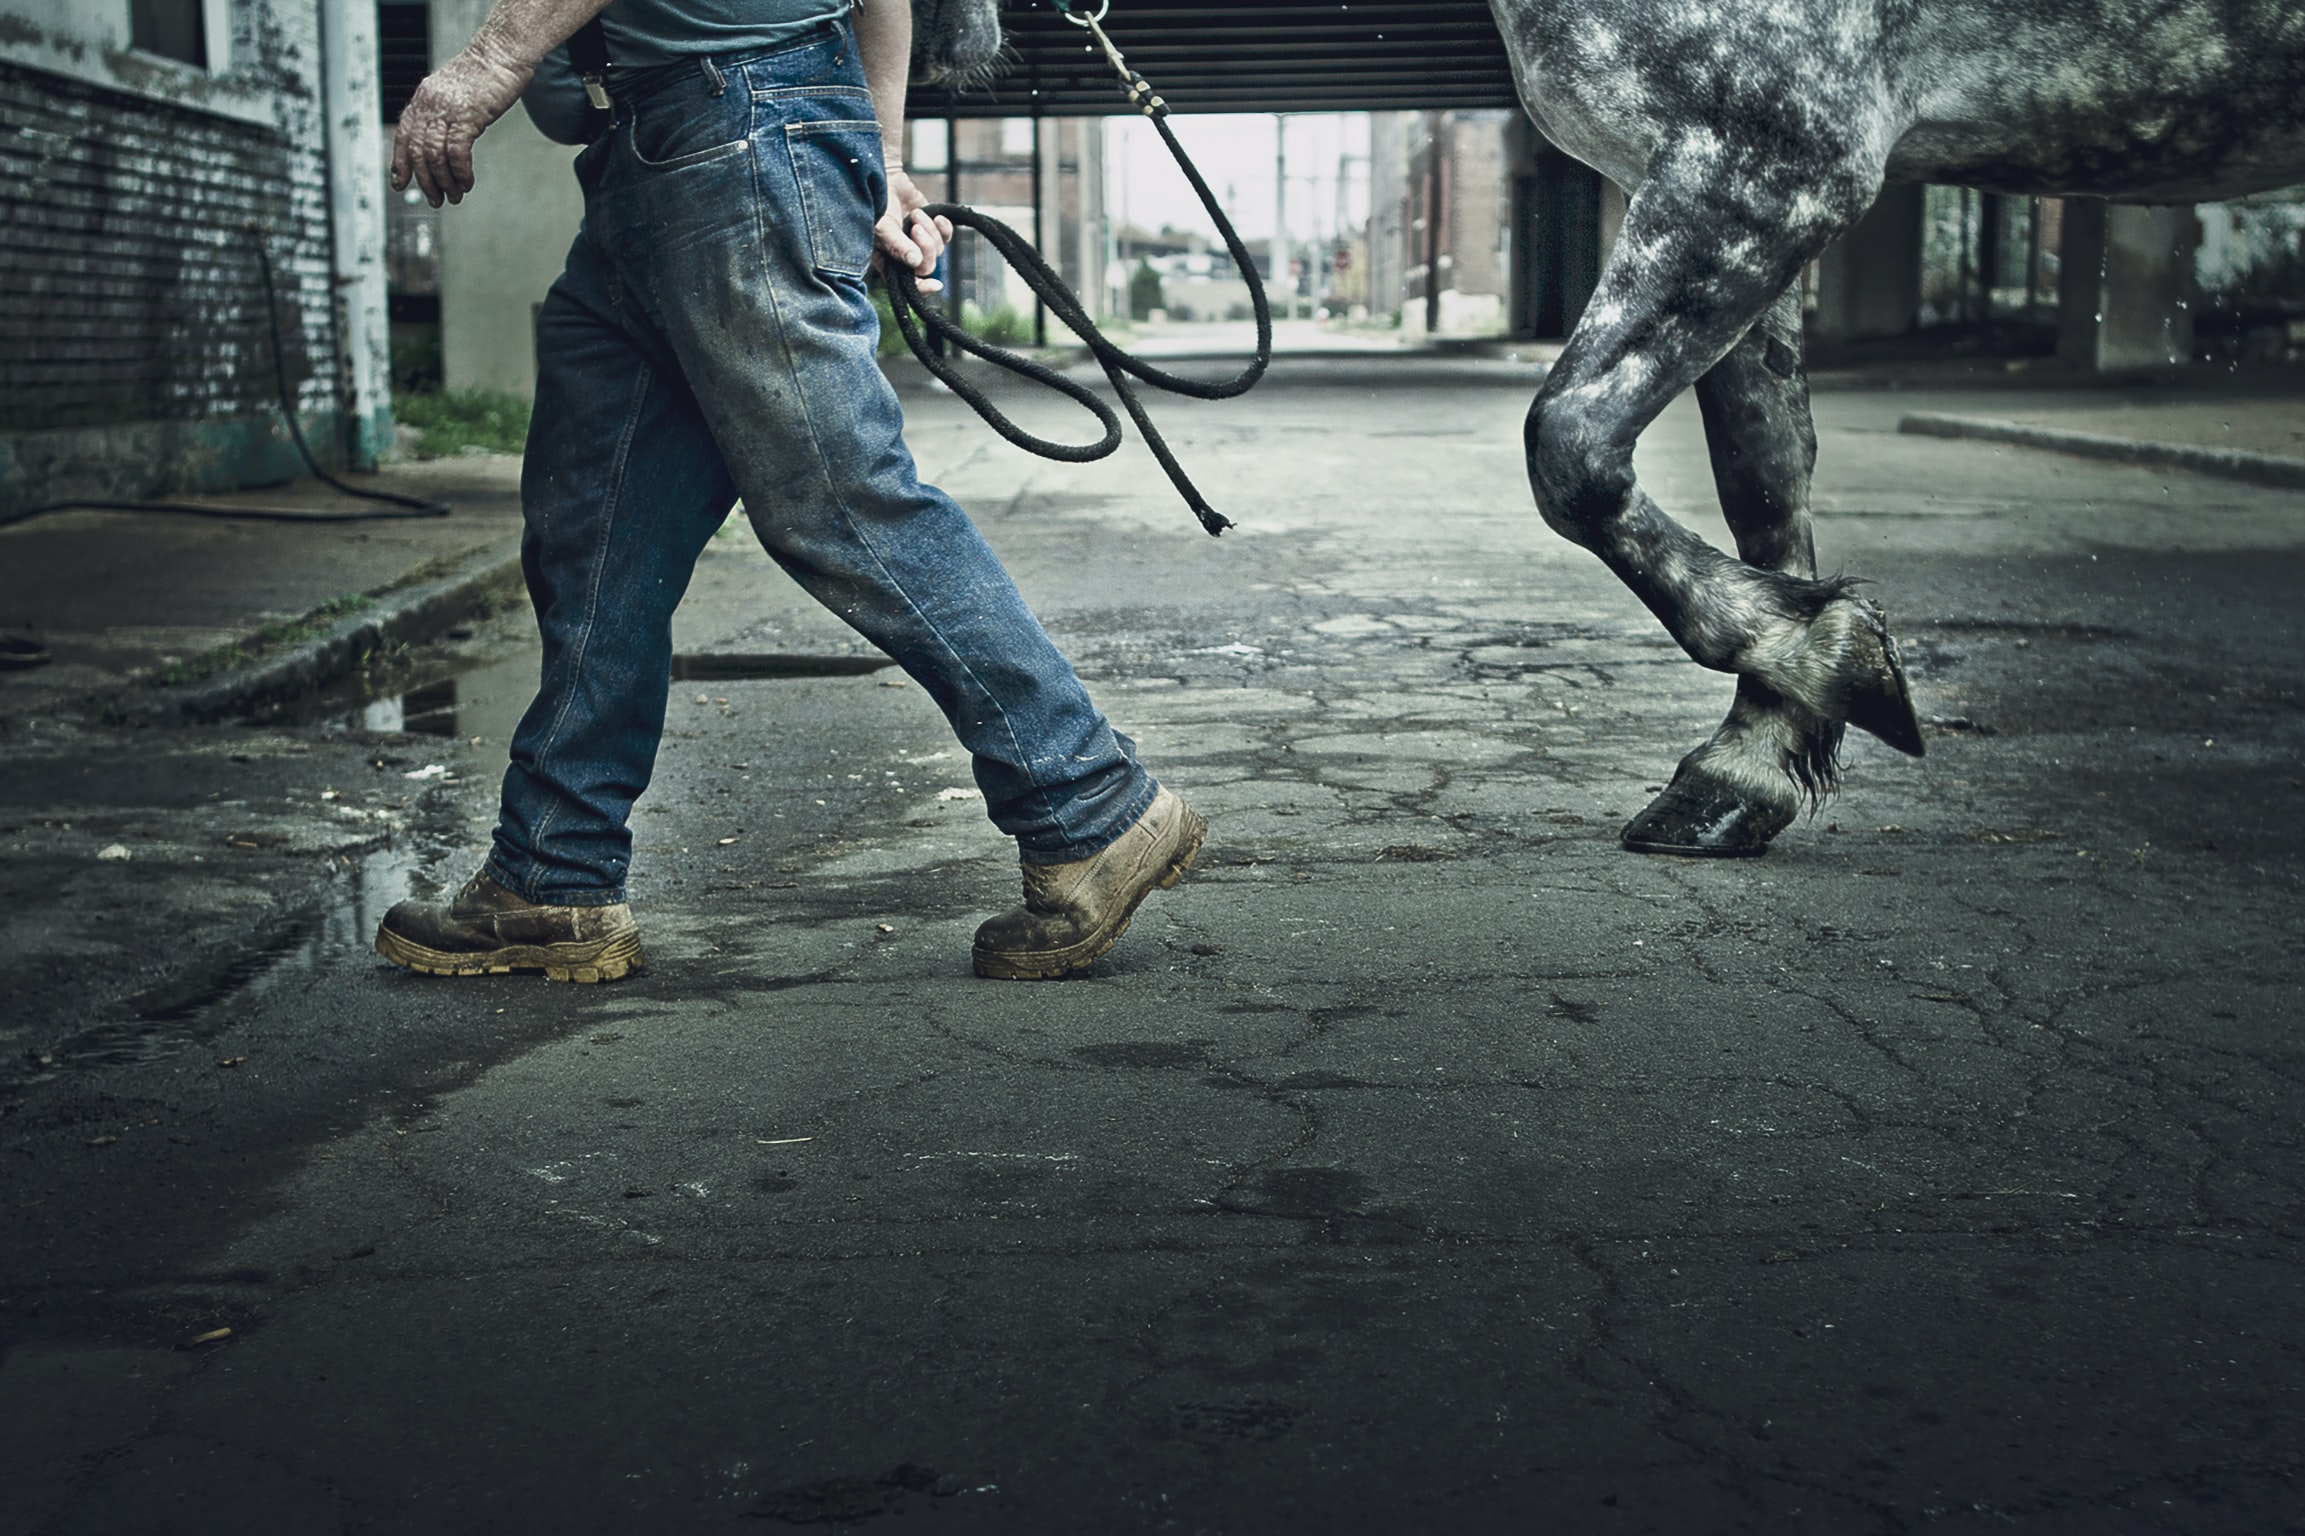 man wearing blue denim jeans waling with grey horse on grey concrete road